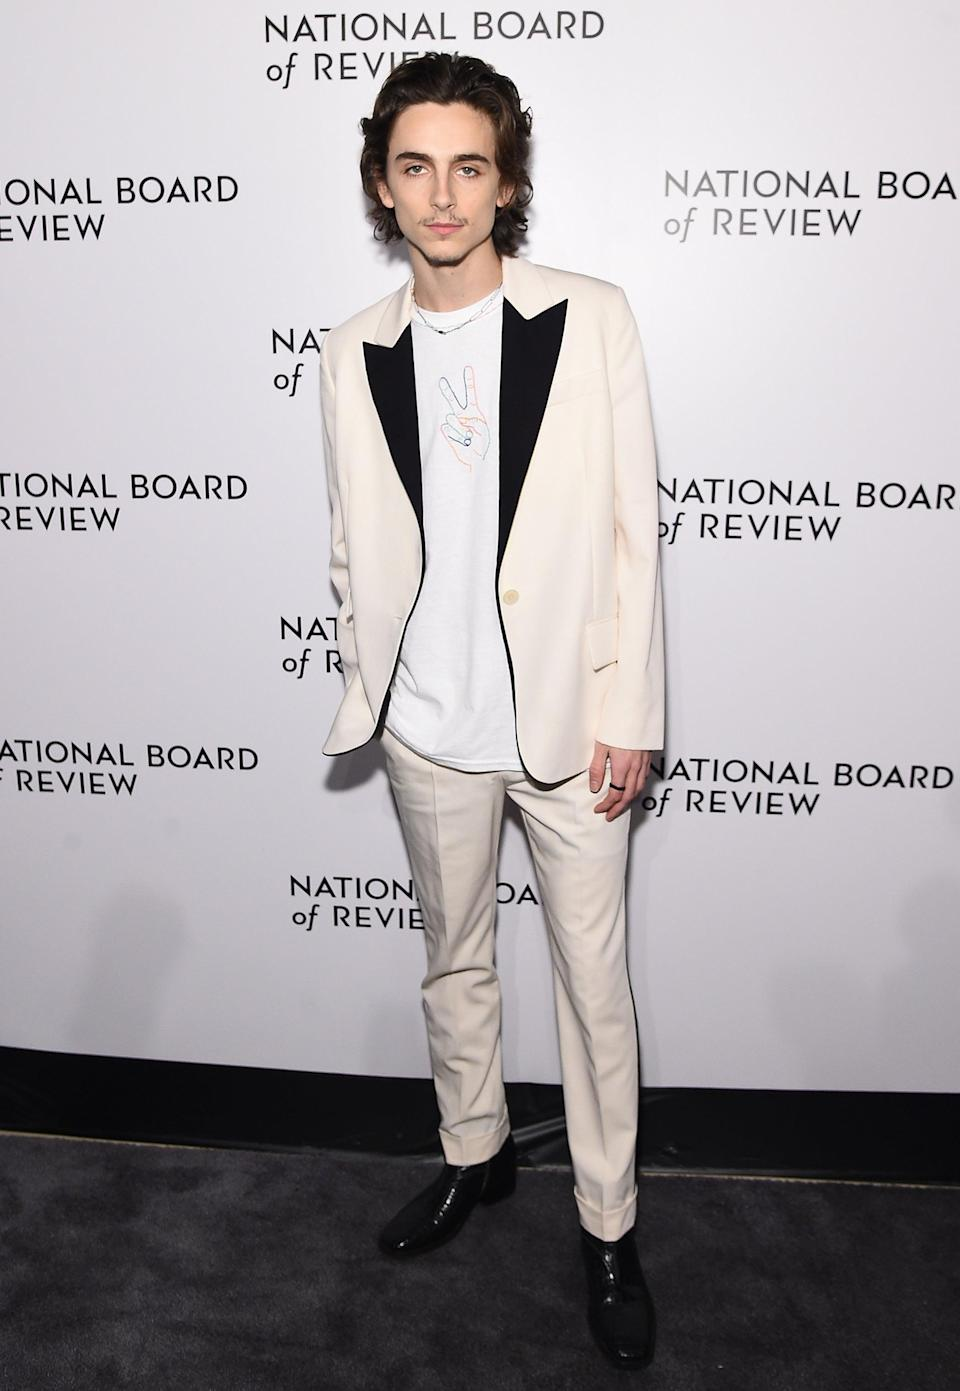 "<h2>Stella McCartney</h2>The only thing better than Timothée in a Stella McCartney suit is Timothée in a Stella McCartney suit with a <a href=""https://www.refinery29.com/en-us/2020/01/9178463/timothee-chalamet-peace-shirt-red-carpet-fashion-avery-warsaw"" rel=""nofollow noopener"" target=""_blank"" data-ylk=""slk:fan-made T-shirt underneath"" class=""link rapid-noclick-resp"">fan-made T-shirt underneath</a>. <span class=""copyright"">Photo: Jamie McCarthy/Getty Images.</span>"